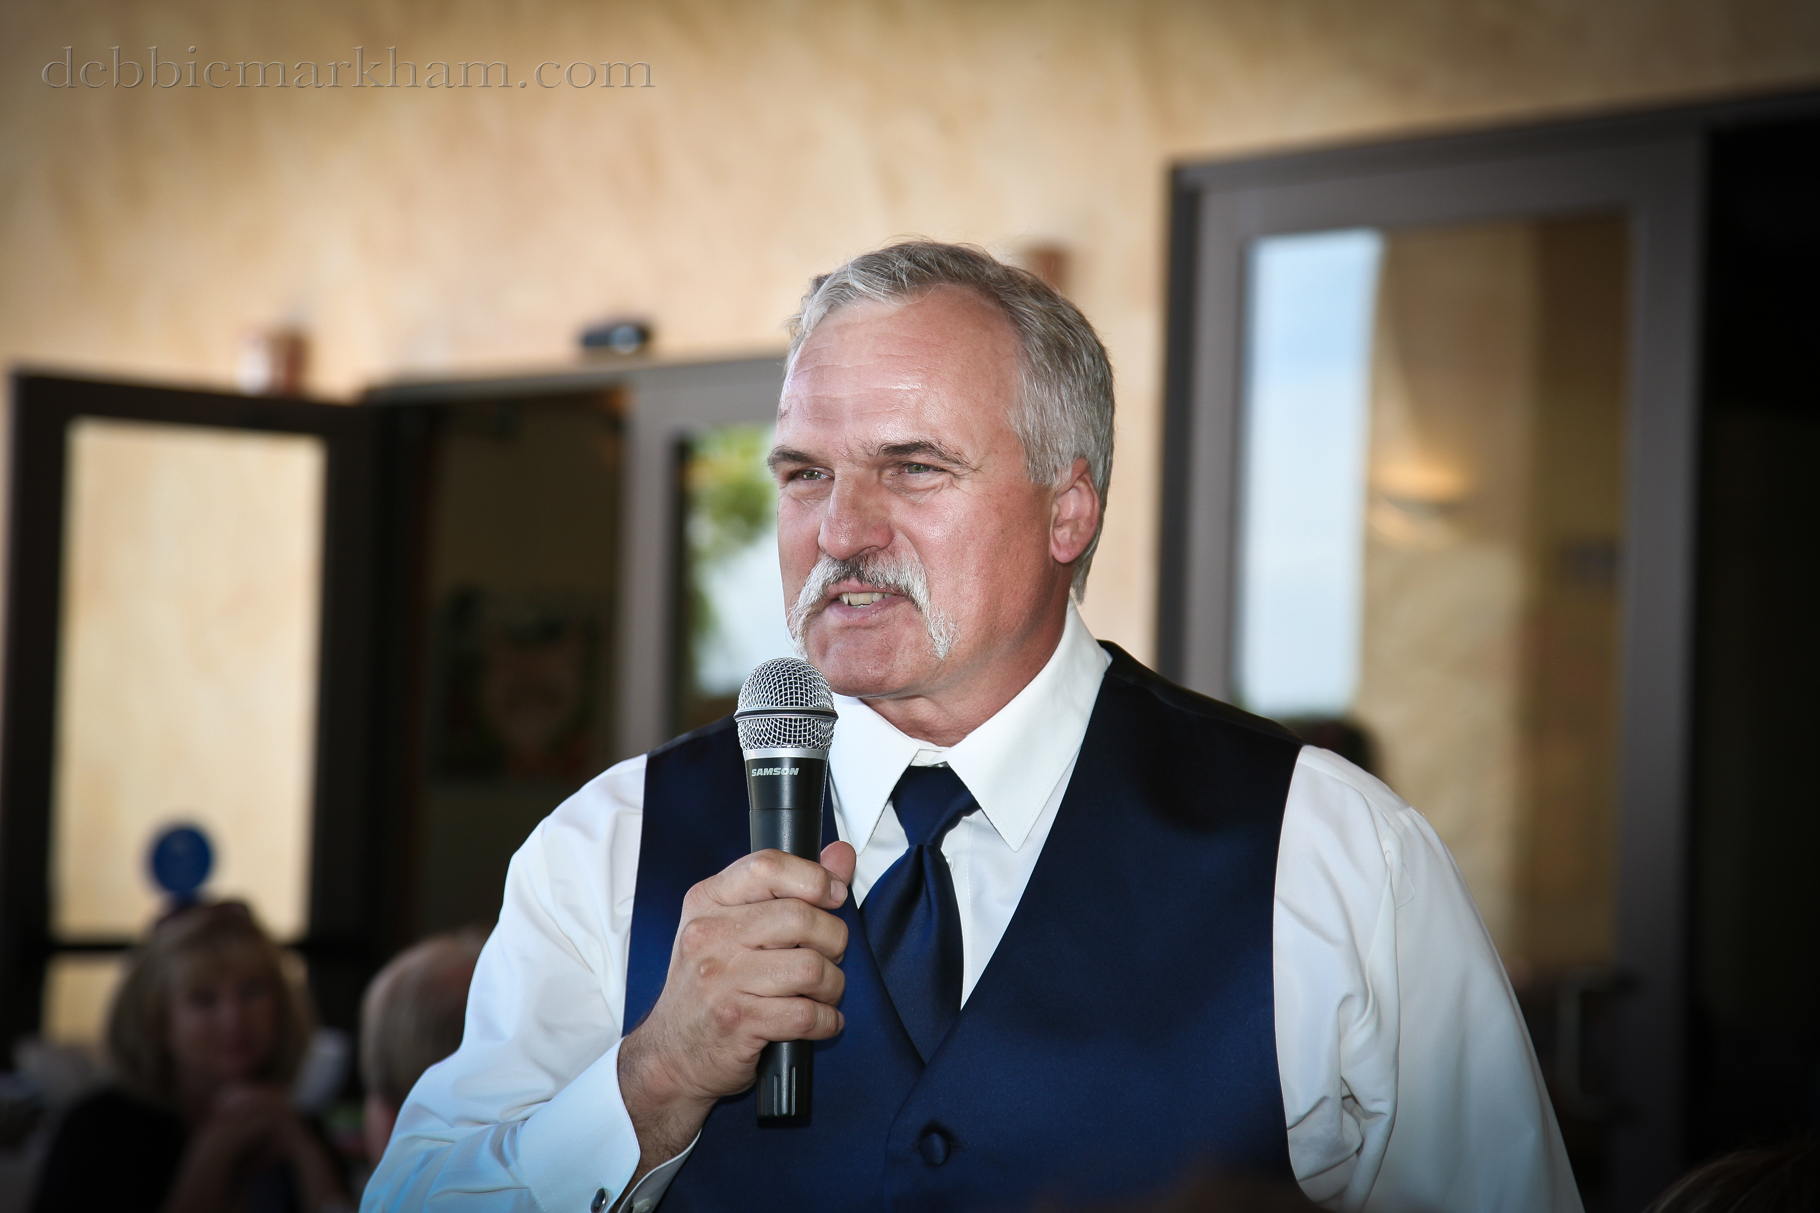 Cambria Photographer Debbie Markham-Paso Robles Wine Country Wedding at Castoro Winery-Father of Bride speachjpg